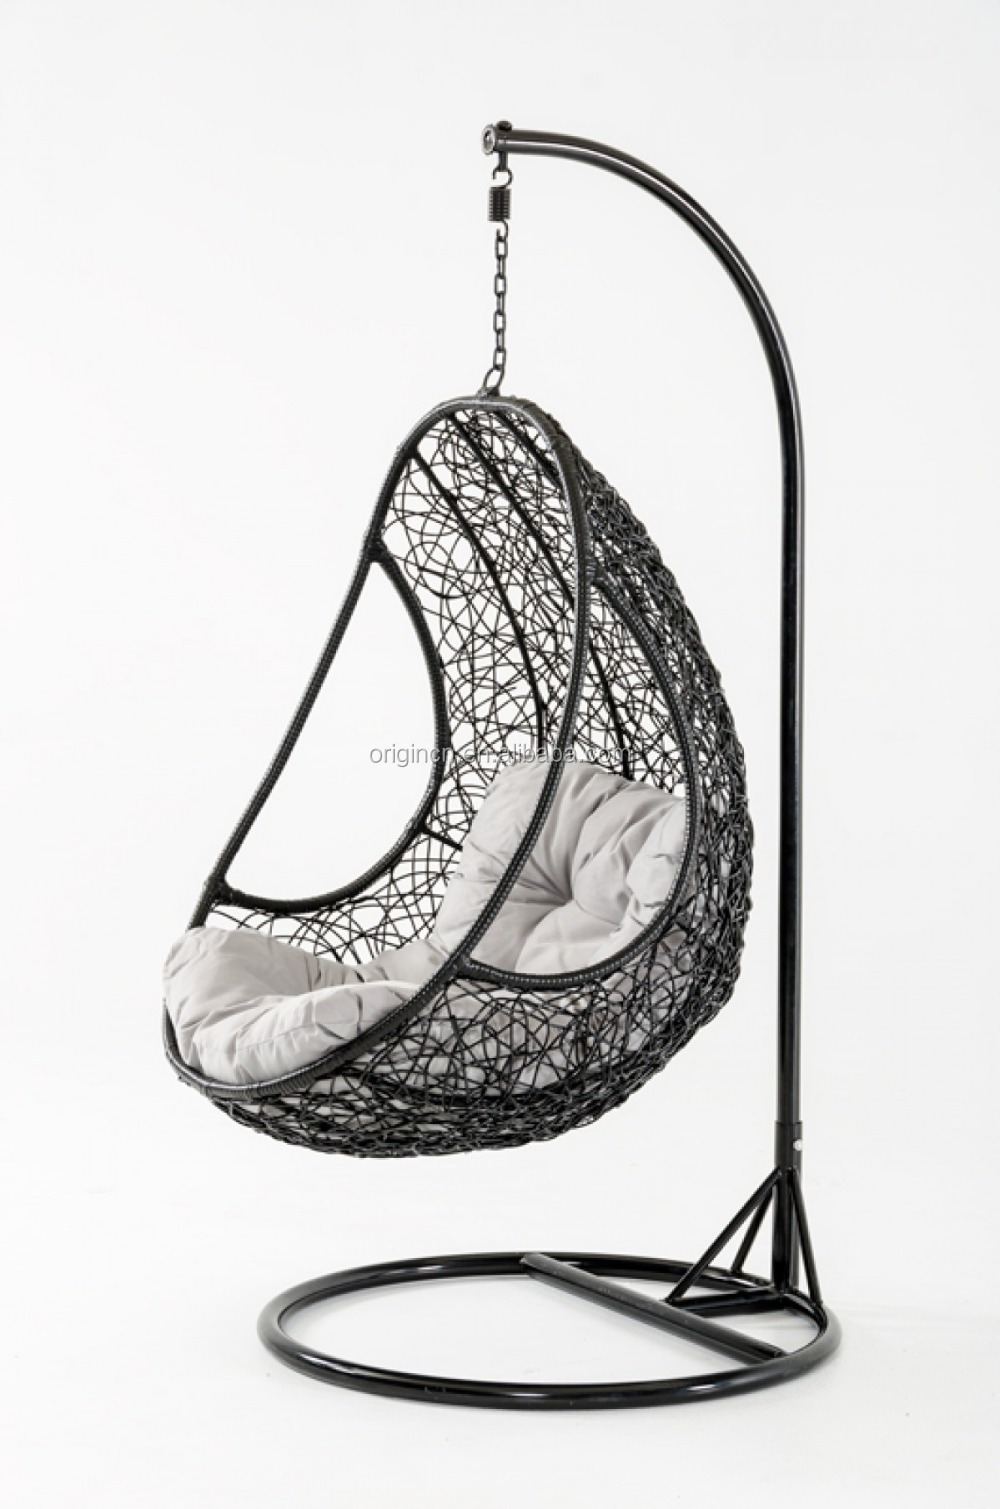 hot selling outdoor hanging egg chair leisure swing chair hammocks mode orw 1001a buy outdoor. Black Bedroom Furniture Sets. Home Design Ideas